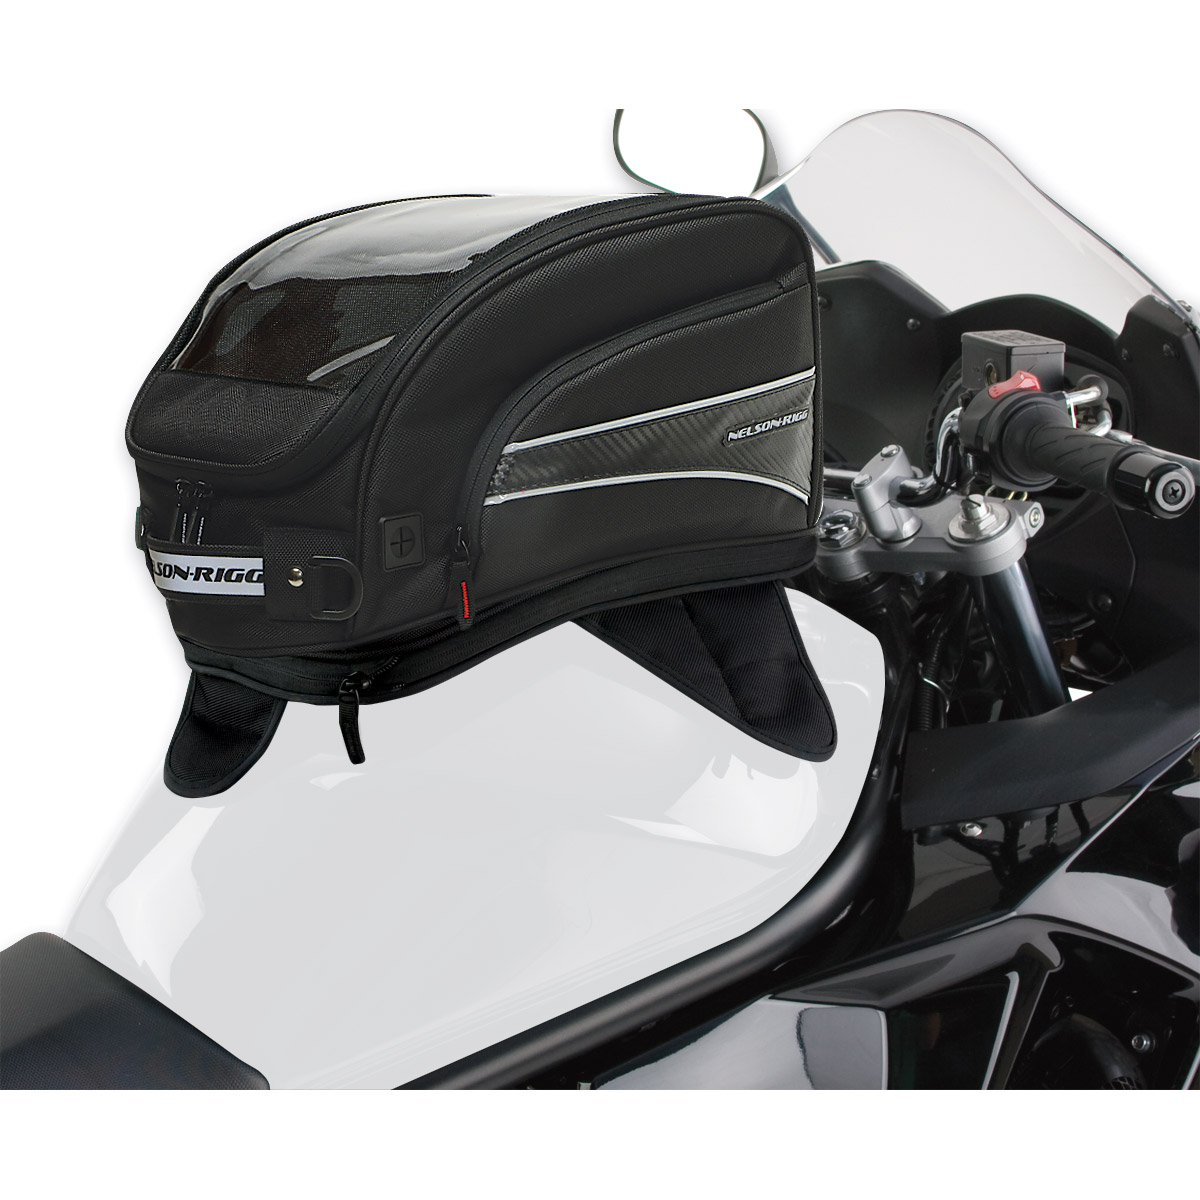 Nelson-Rigg CL-2016-MG Journey XL Tank Bag Magnetic Mount